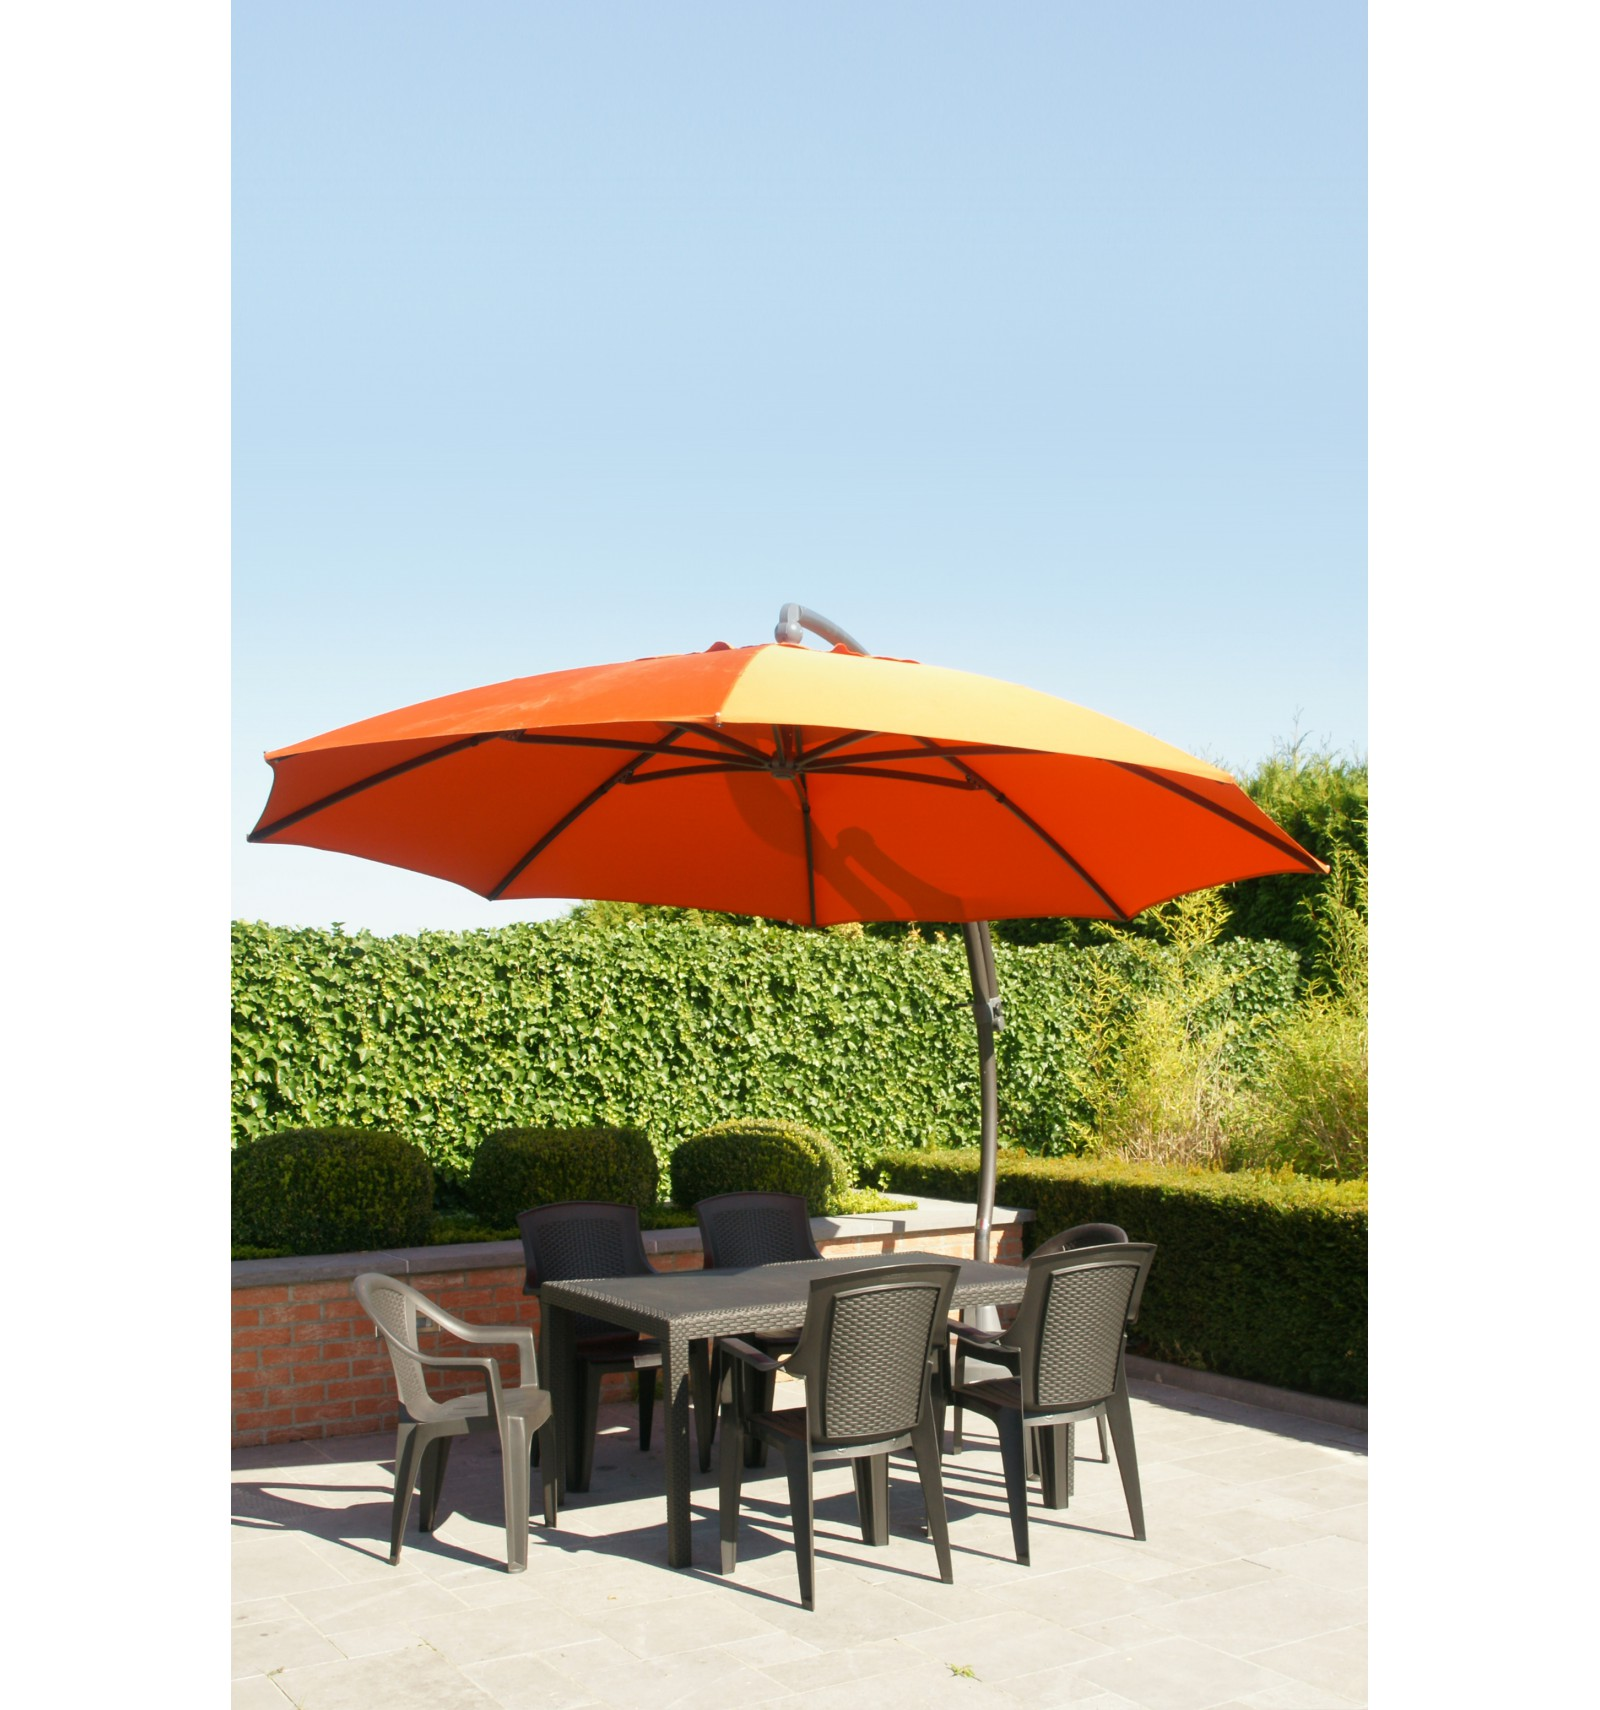 toile de remplacement terracotta en polyester pour parasol easy sun 375. Black Bedroom Furniture Sets. Home Design Ideas